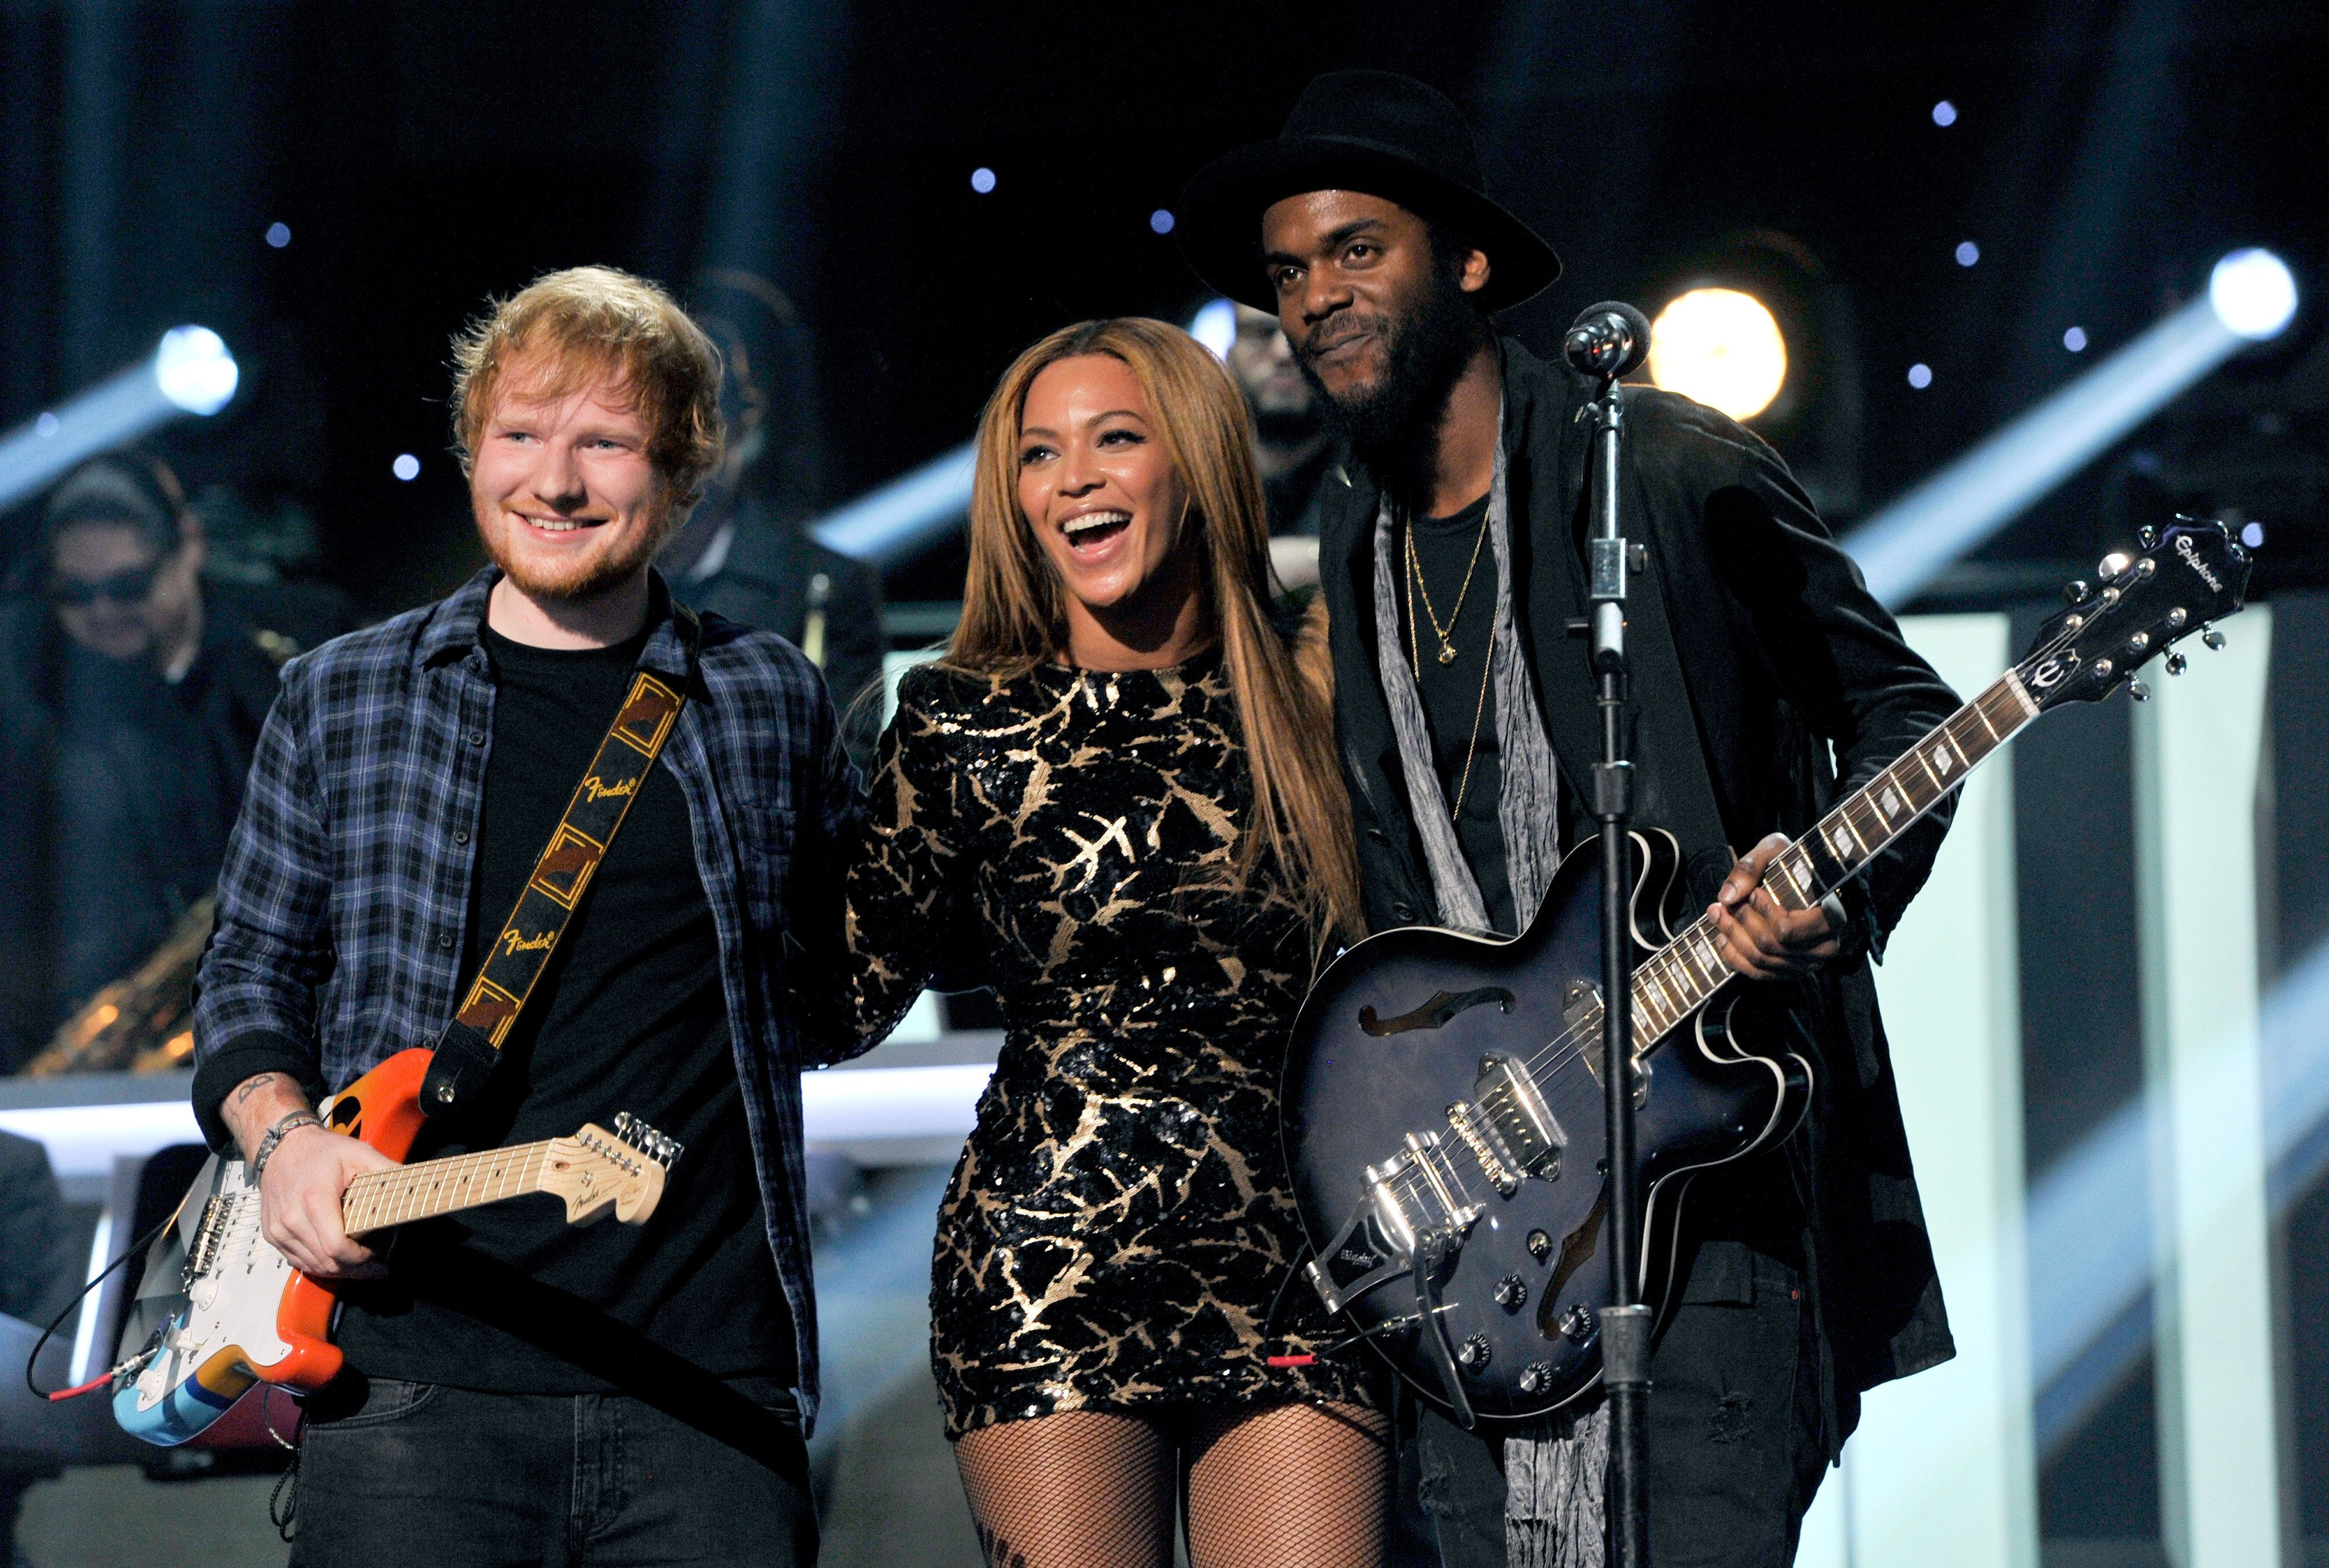 Ed Sheeran in disbelief over new Beyonce collaboration